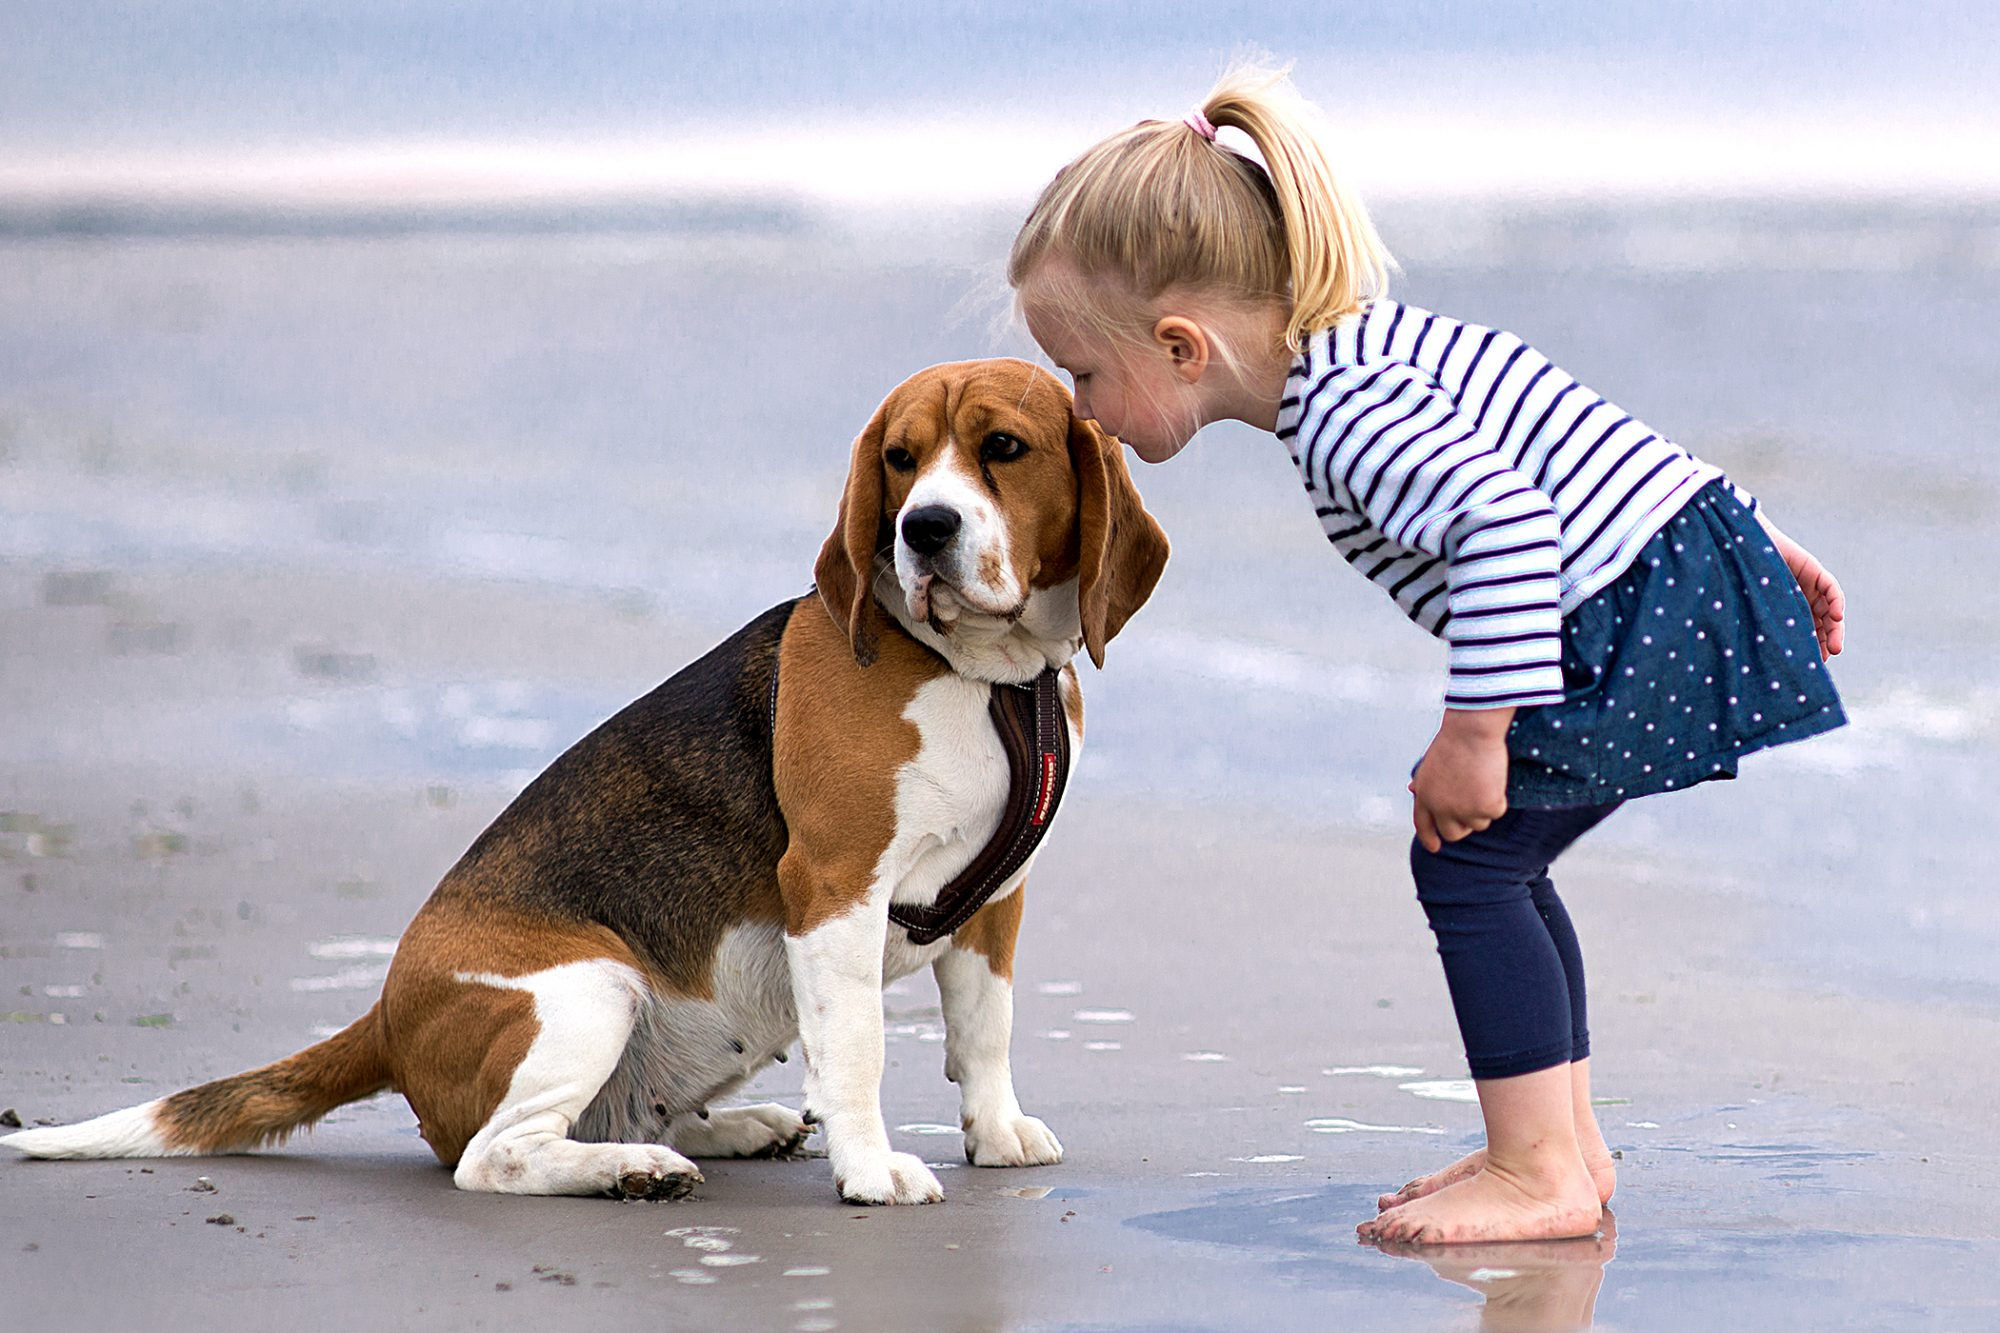 Beagle sits on beach while inspected by young girl